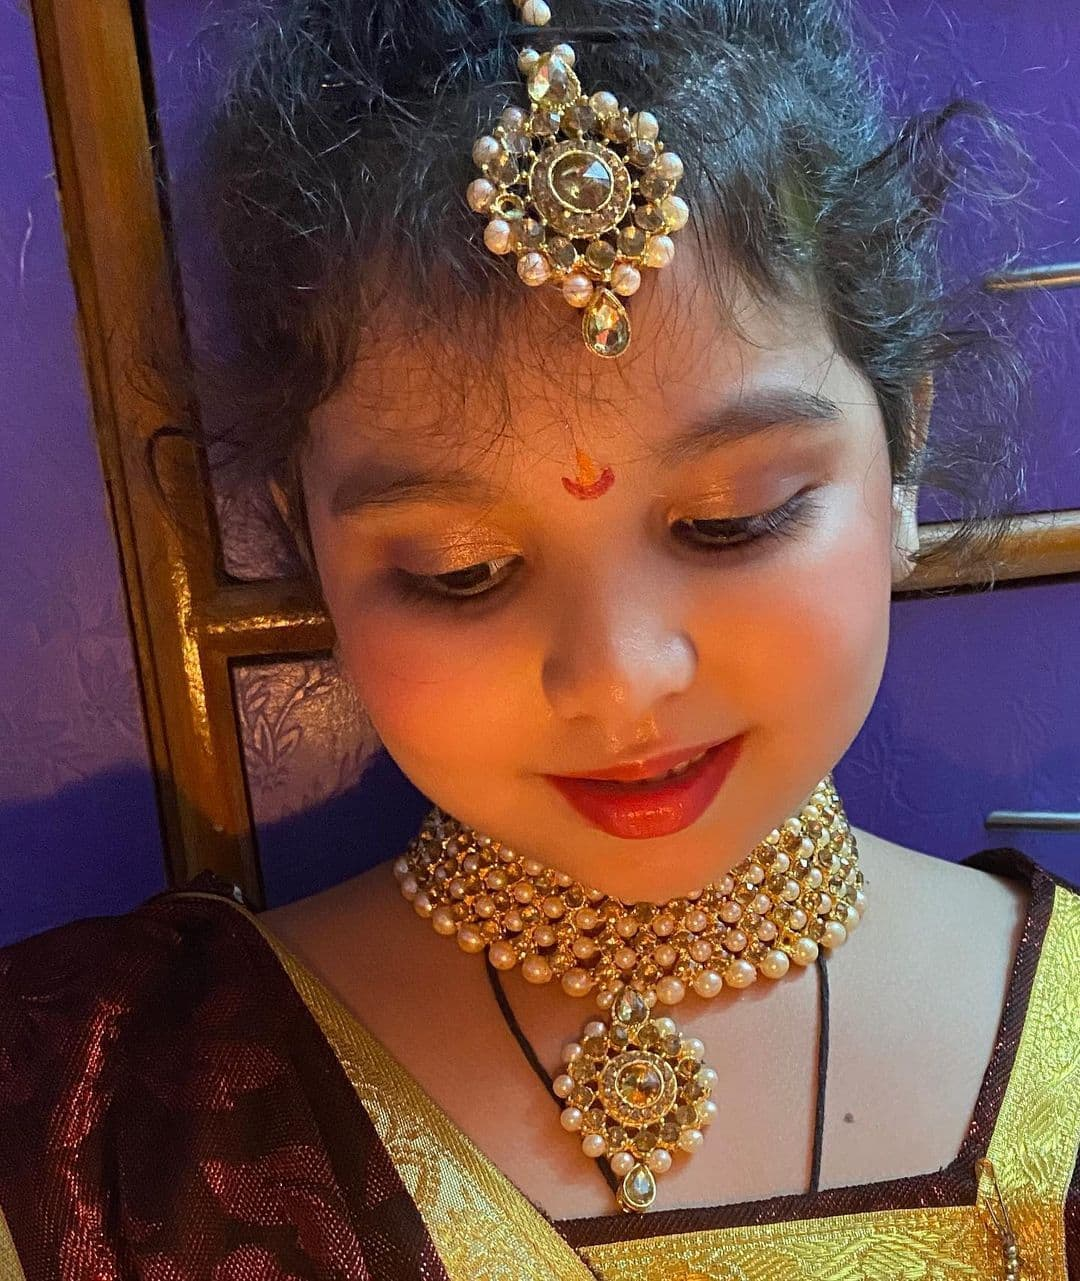 Mohammed Shami daughter Aaira Shami